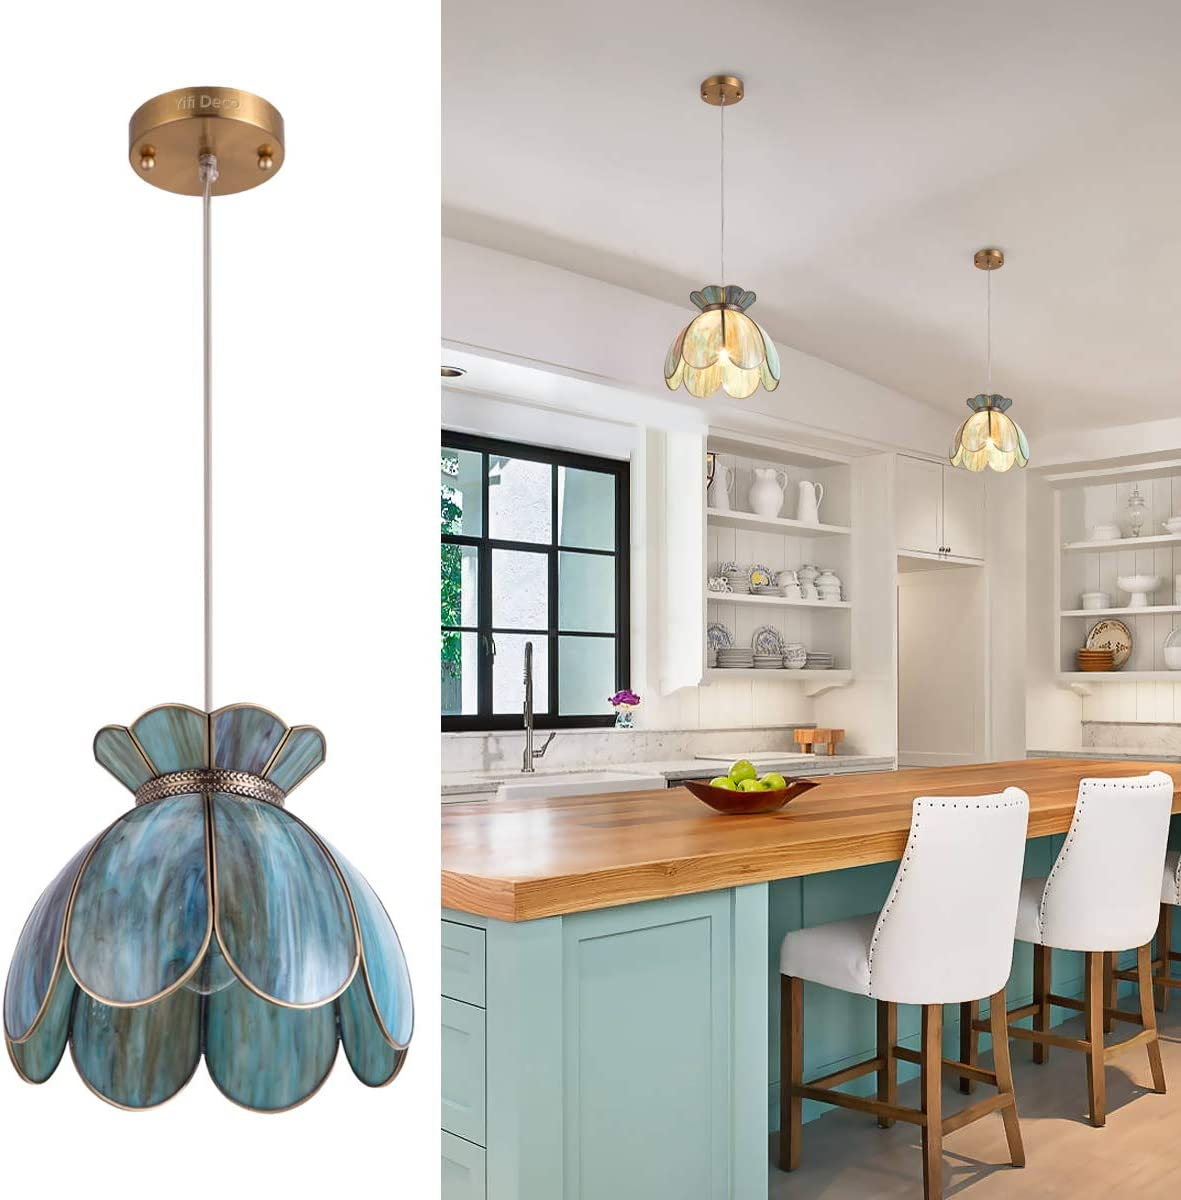 YIFI Deco Pendant Light Brass Vintage Lotus Flower Adjustable Ceiling Pendant Light for Kitchen Island Dining Room Bedroom Living Room, Emerald